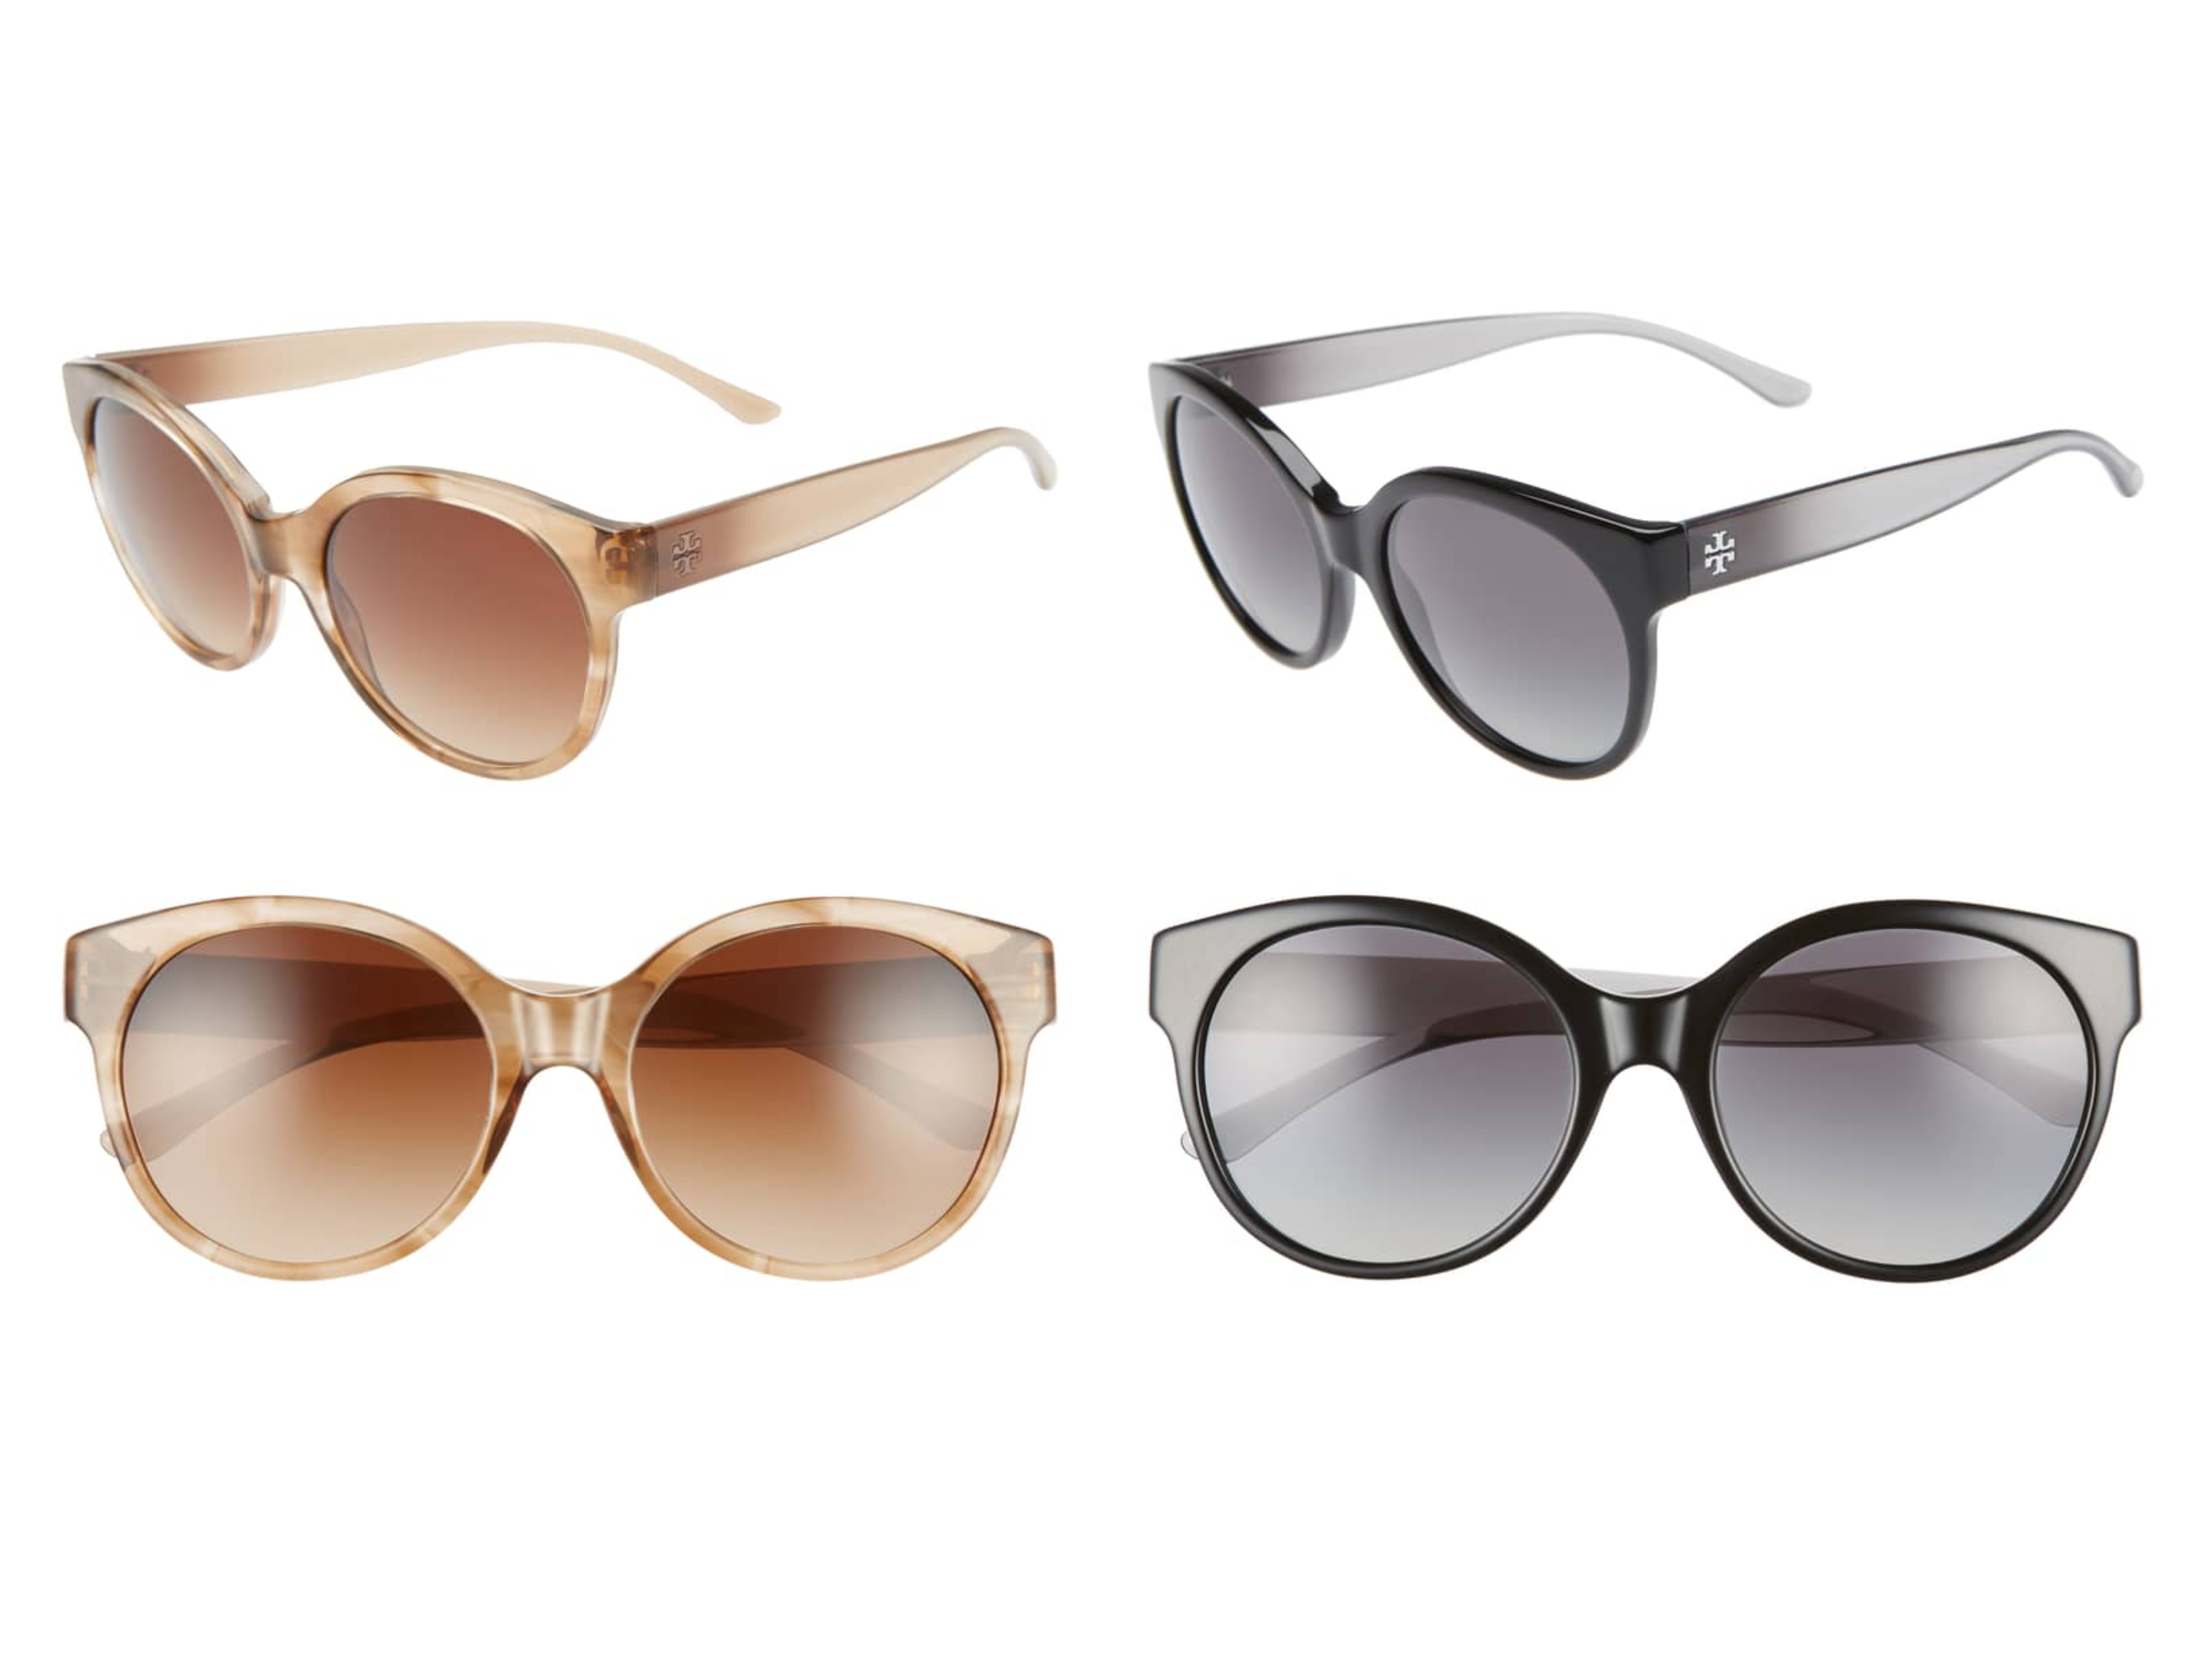 0e6fd68449 Nordstrom  Save 40% Off Tory Burch Sunglasses + Free Shipping ...